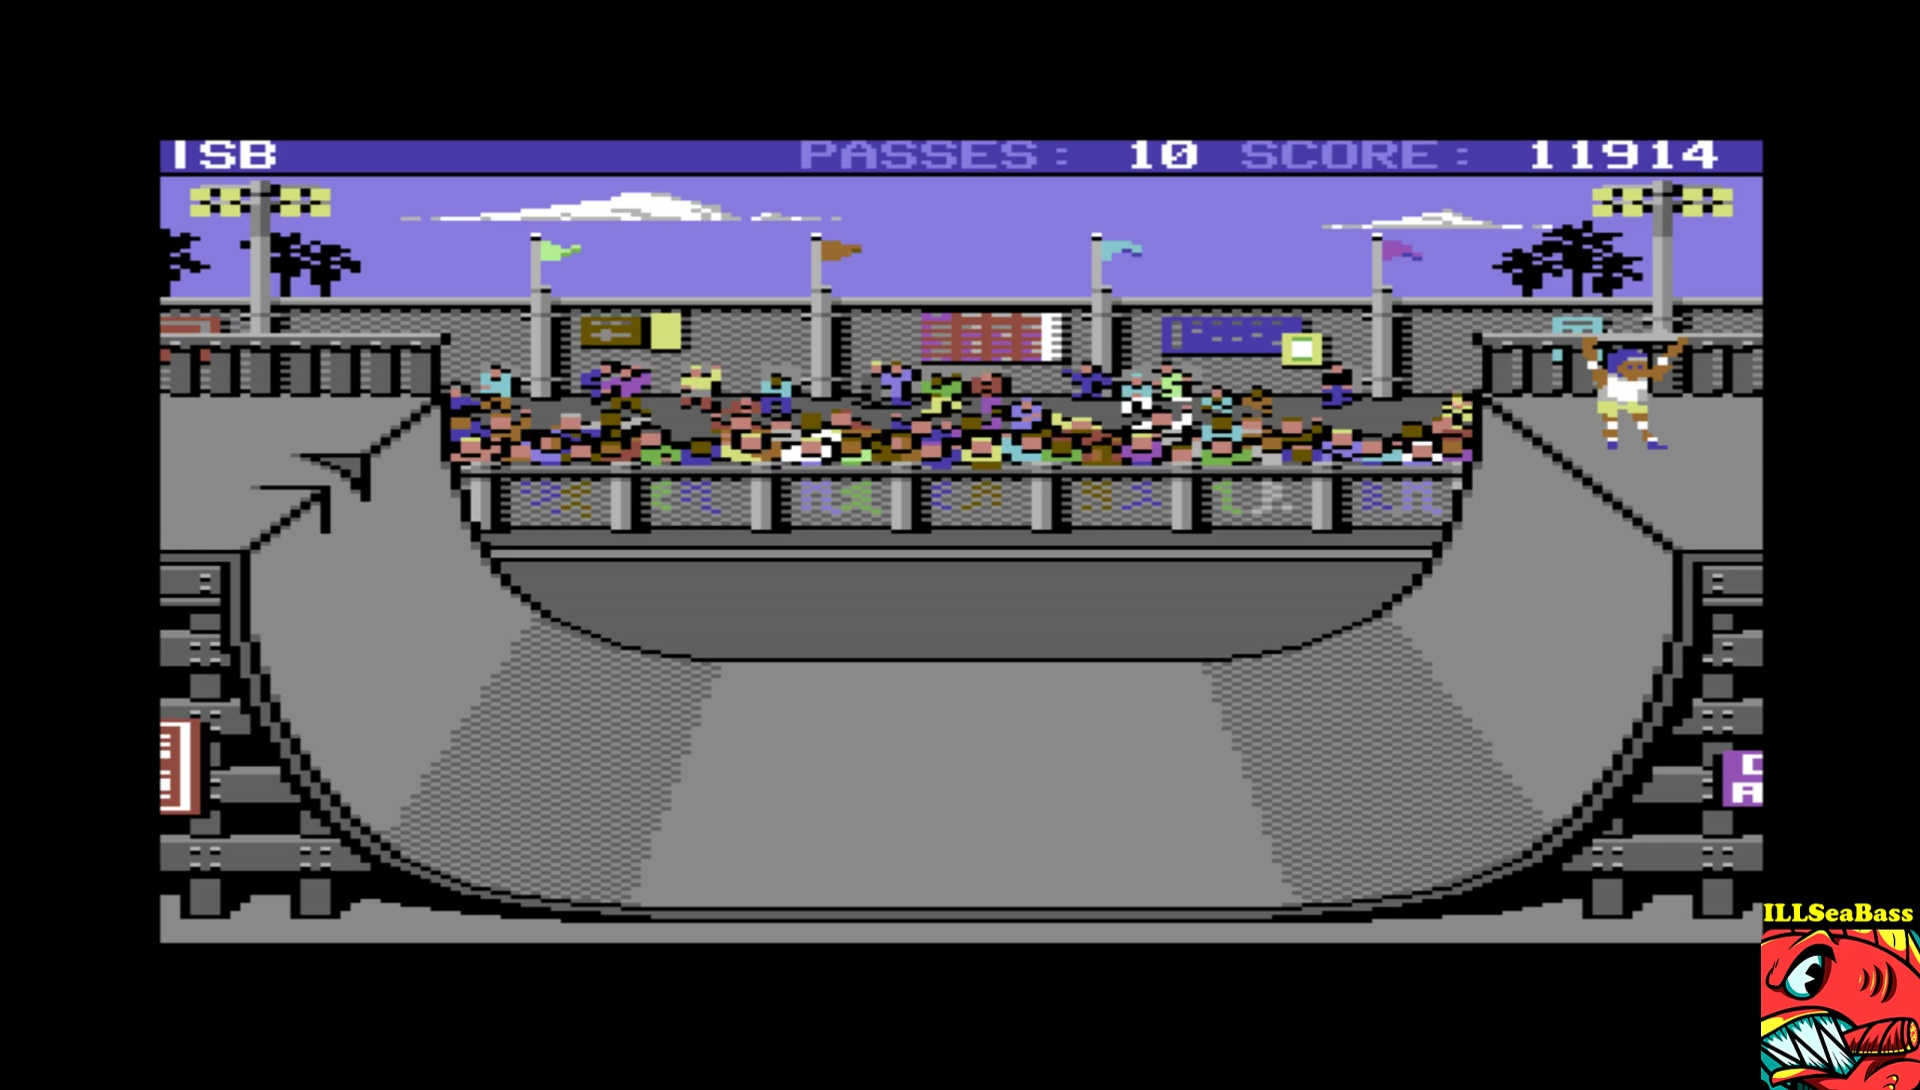 ILLSeaBass: Skate or Die [Ramp Freestyle] (Commodore 64 Emulated) 11,914 points on 2017-04-12 23:06:17